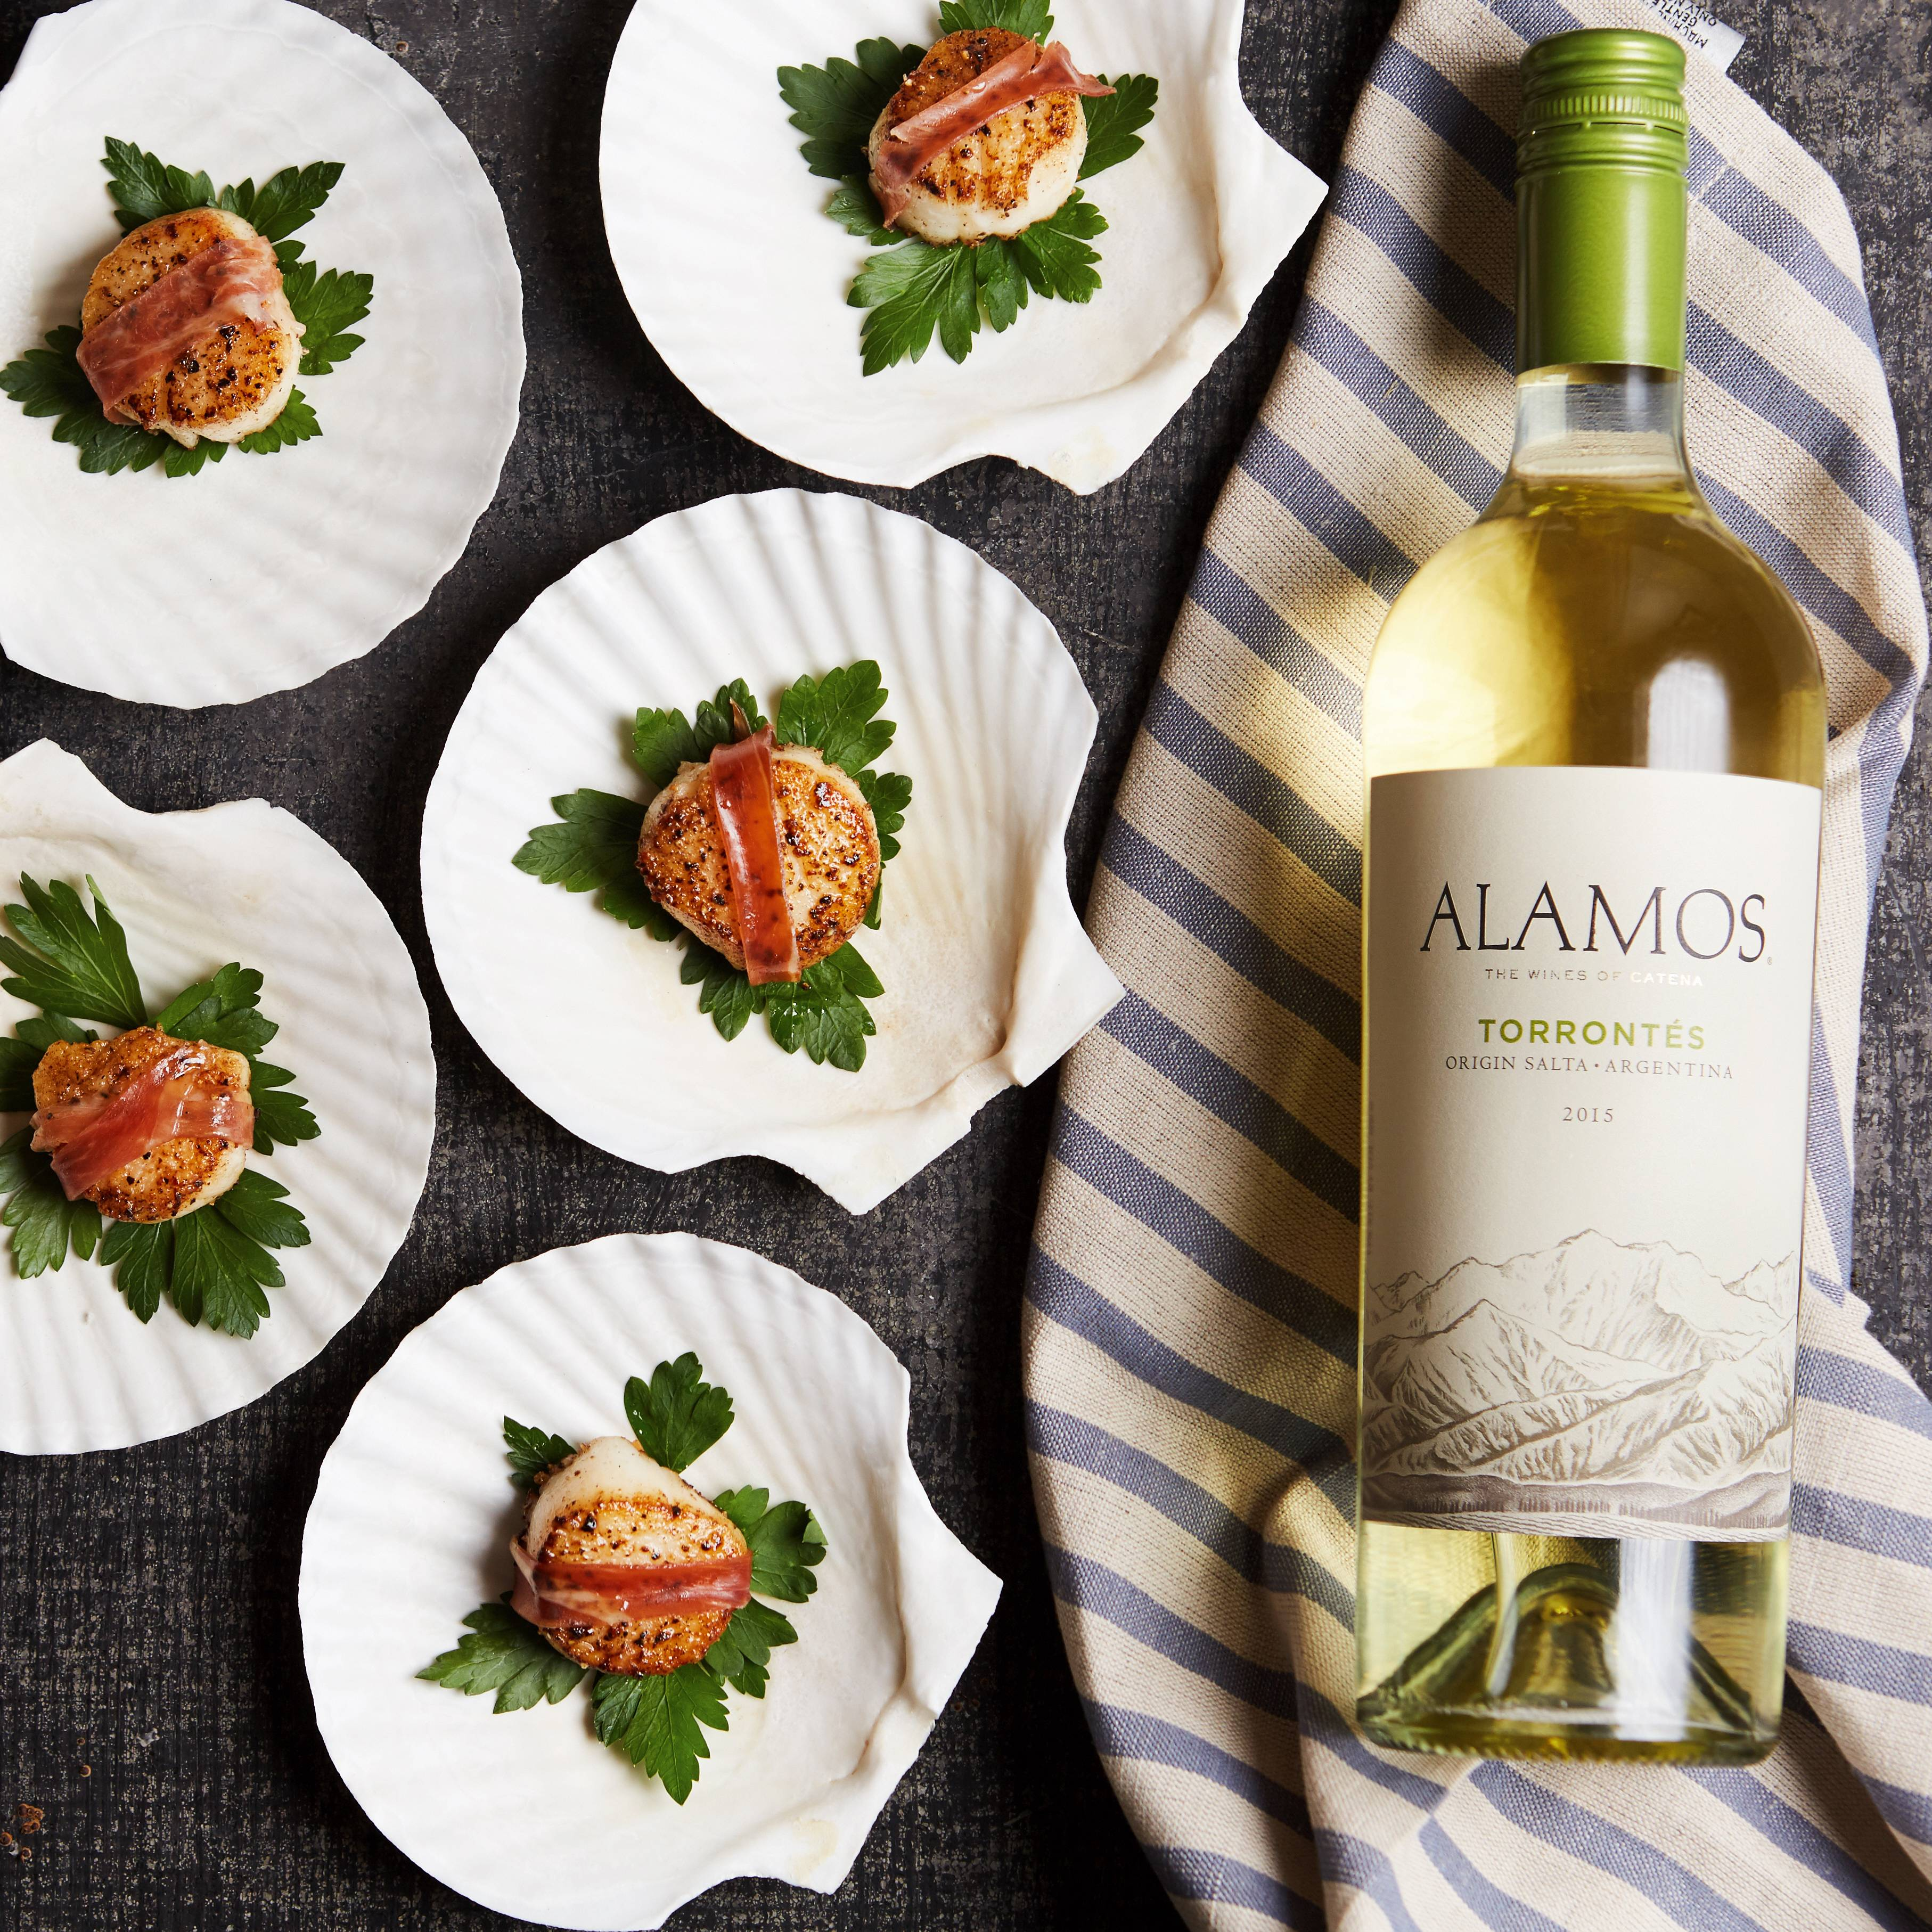 SCALLOPS AND TORRENTES 1.jpg